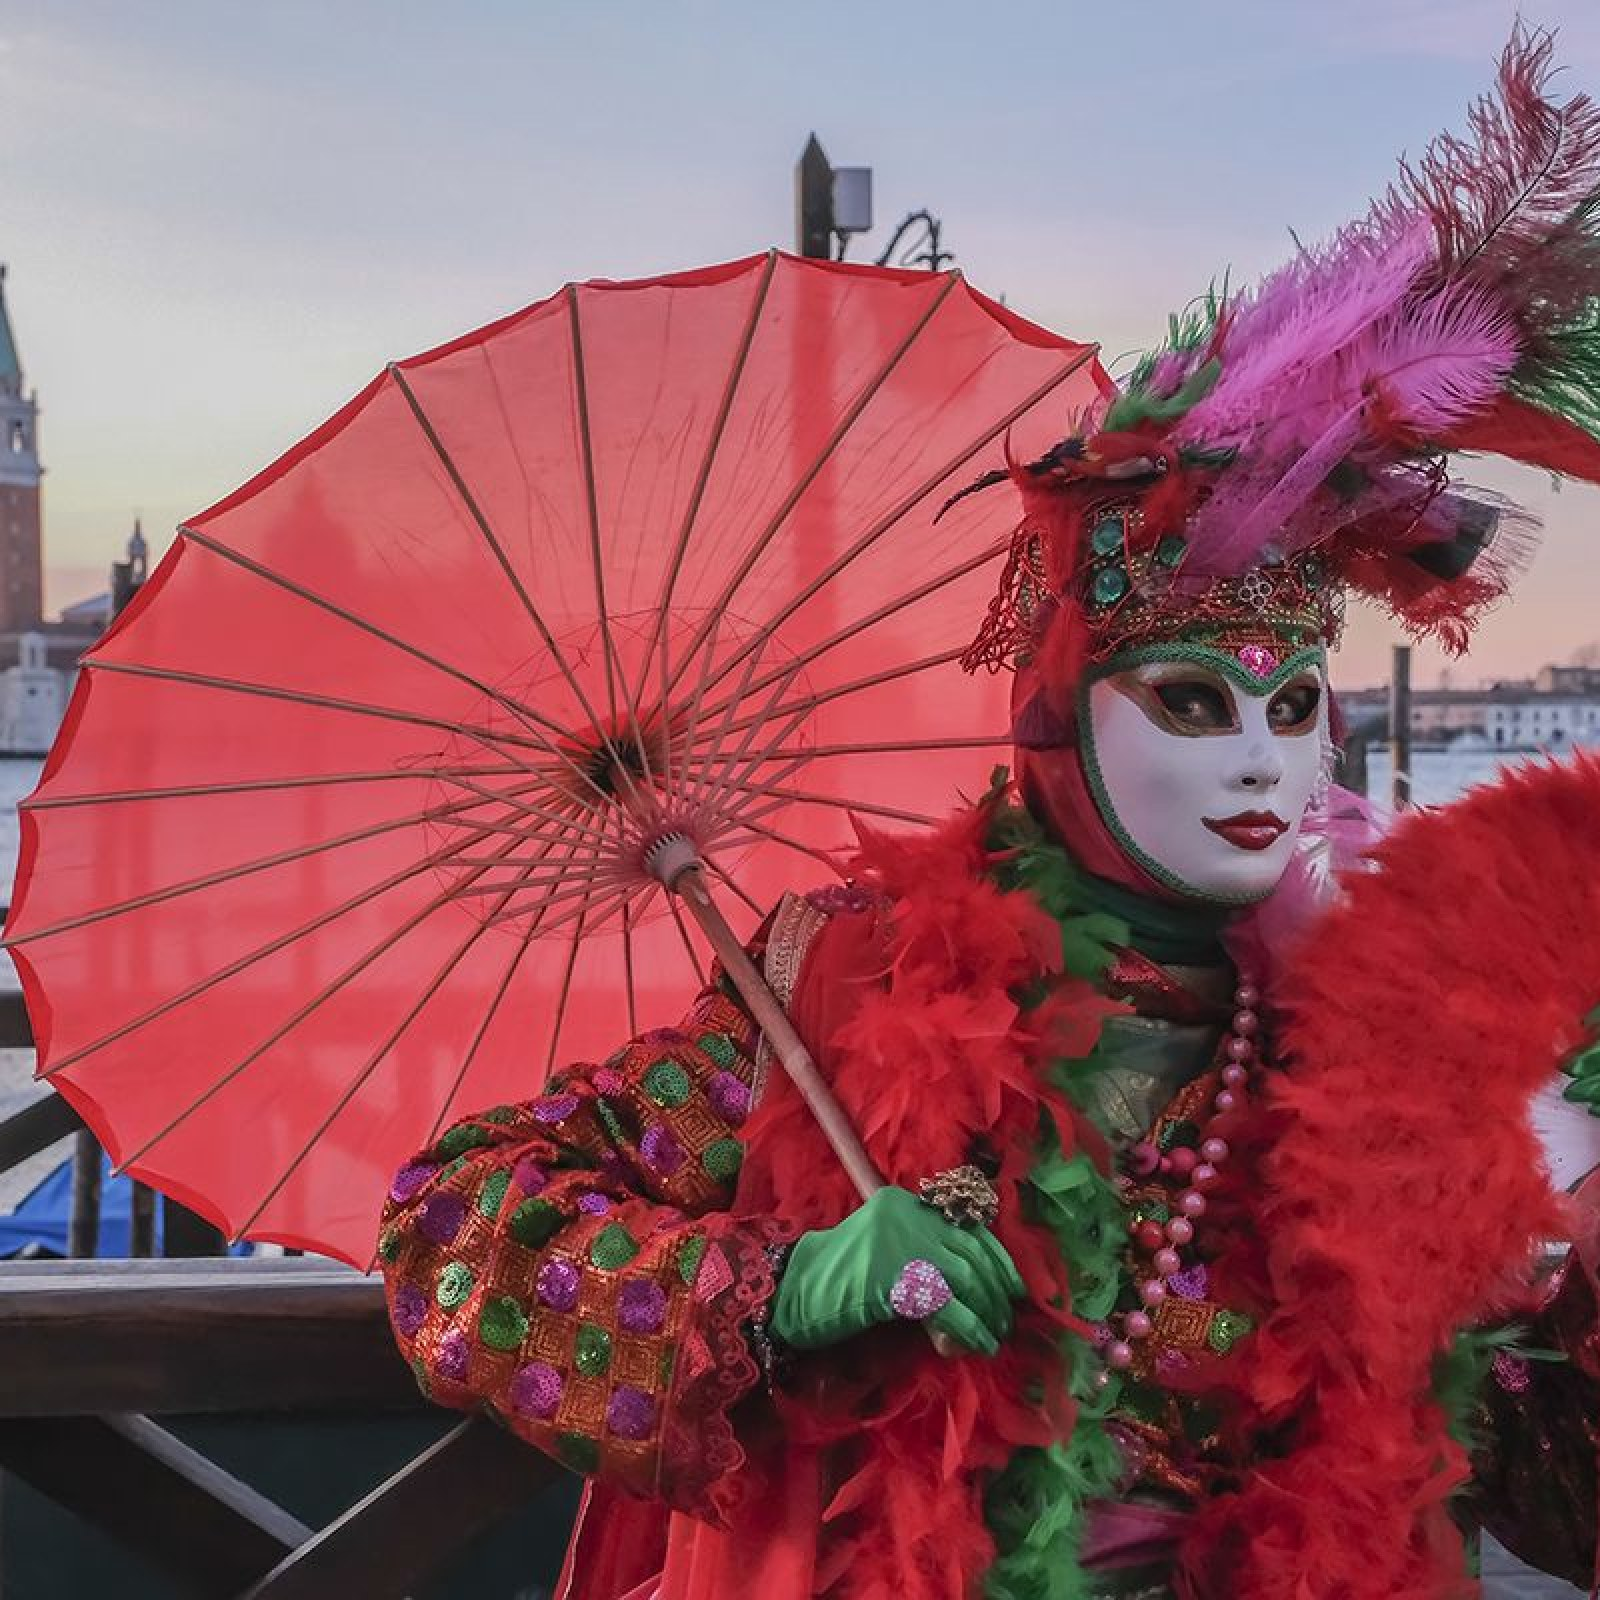 Carnival in Venice 2019: Great Photos of Masked Revelers in